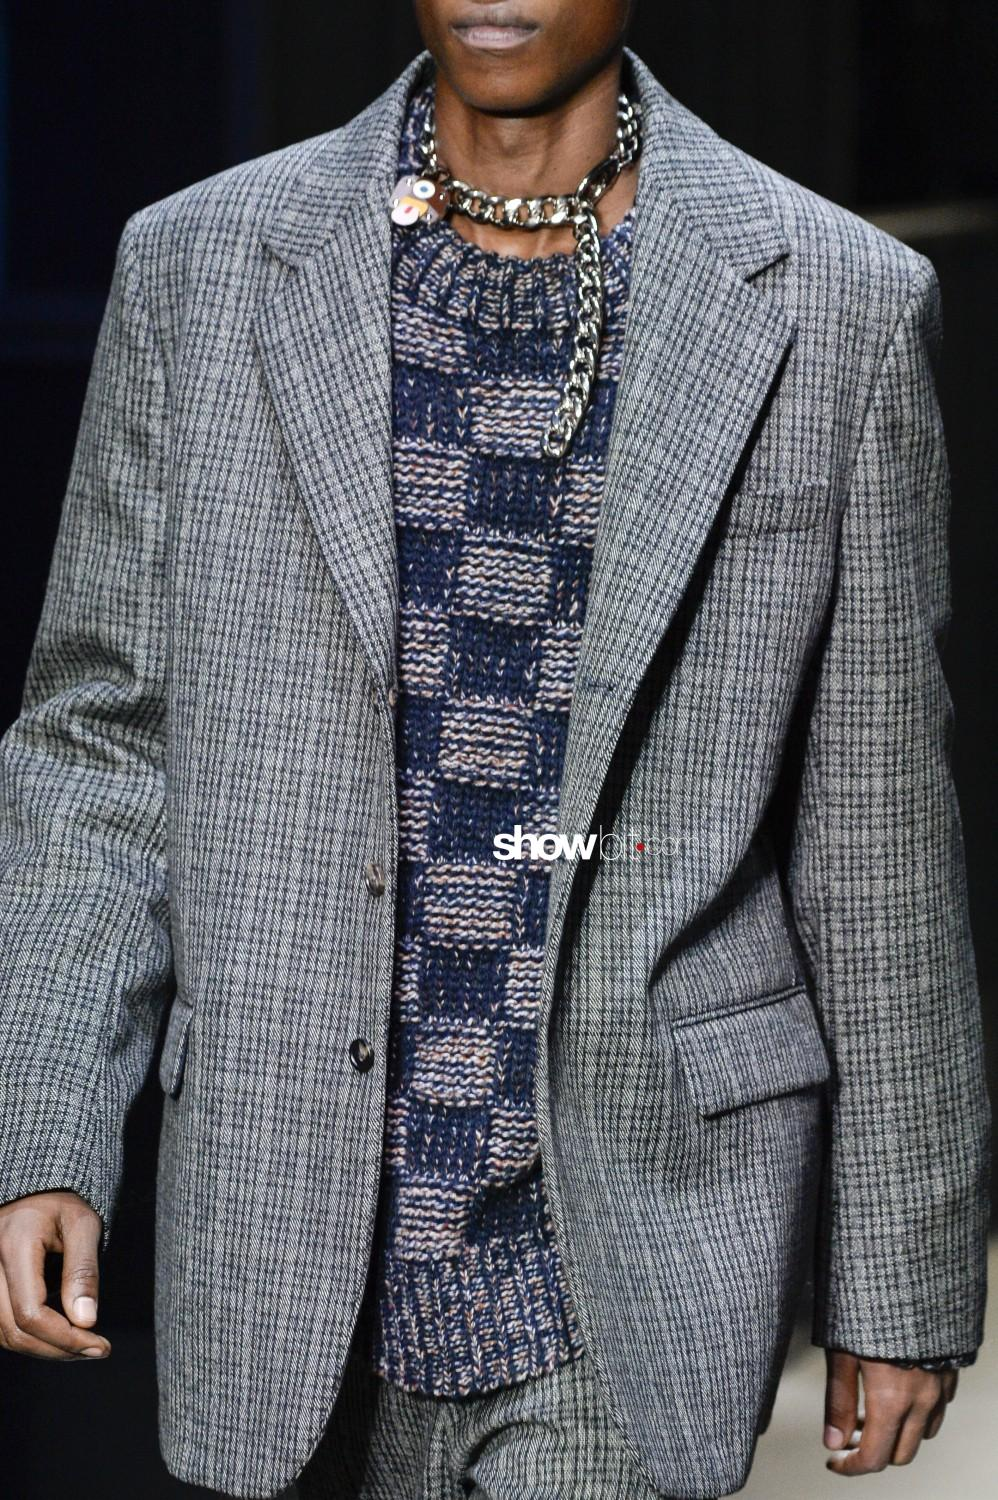 Marni close up details Man Fall Winter 2019 Milano